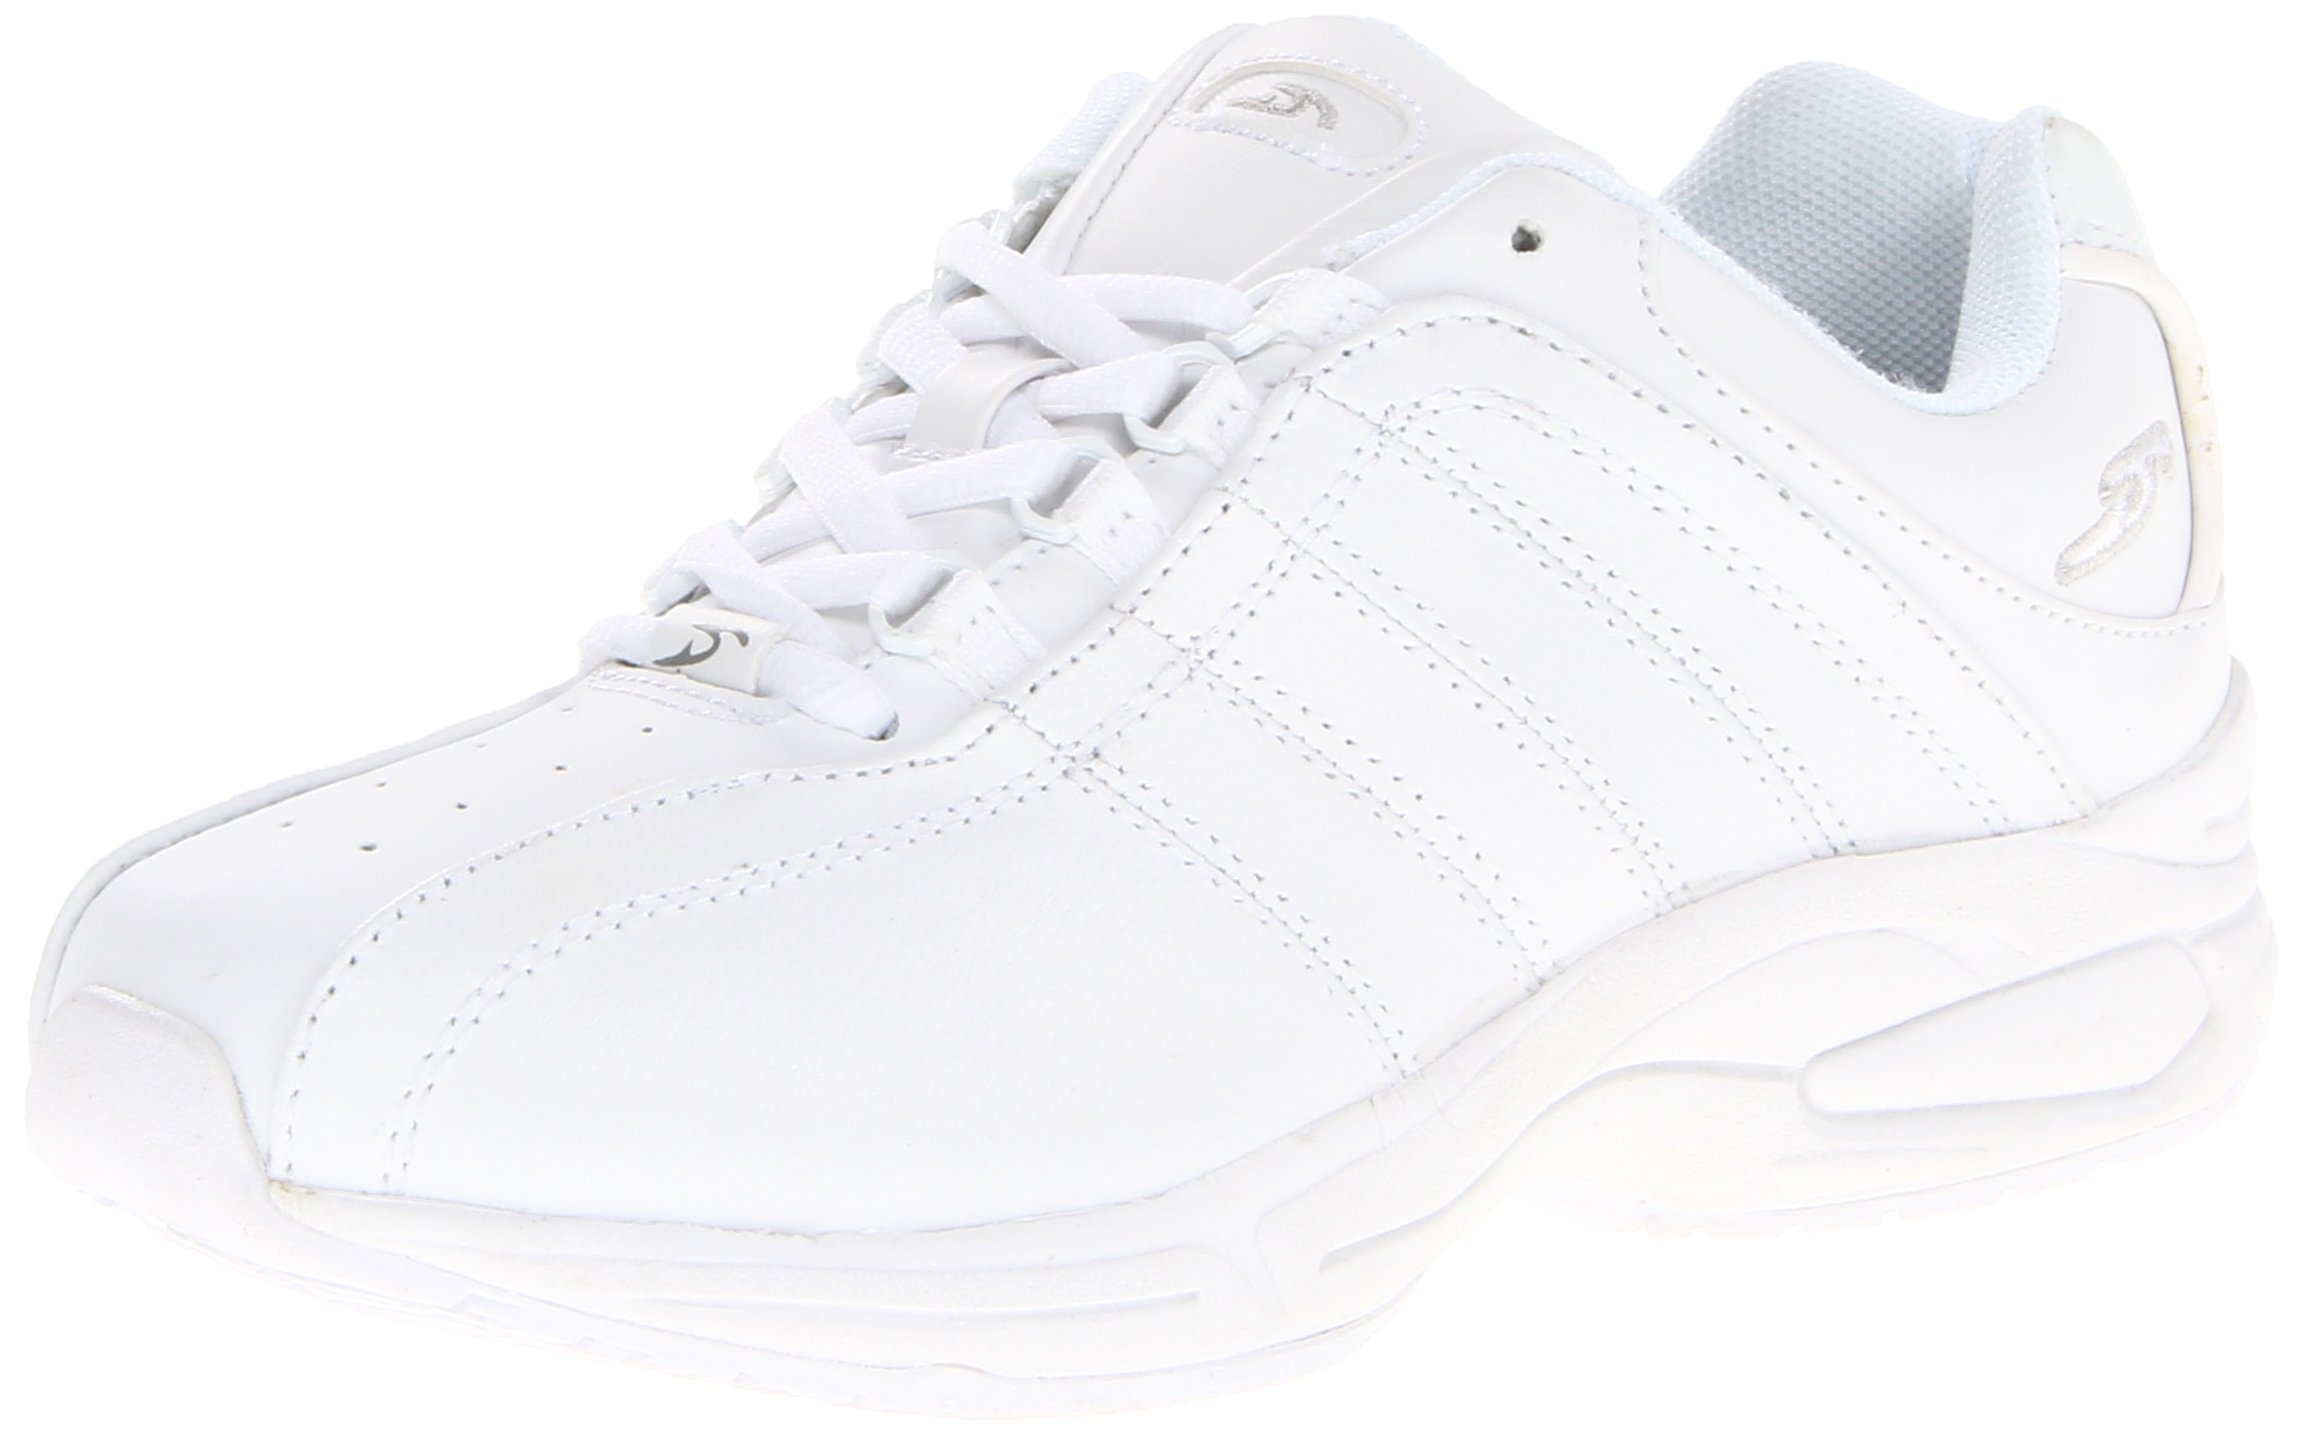 Dr. Scholl's Women's Kimberly Slip Resistant Work Shoe,Super White,9 W US